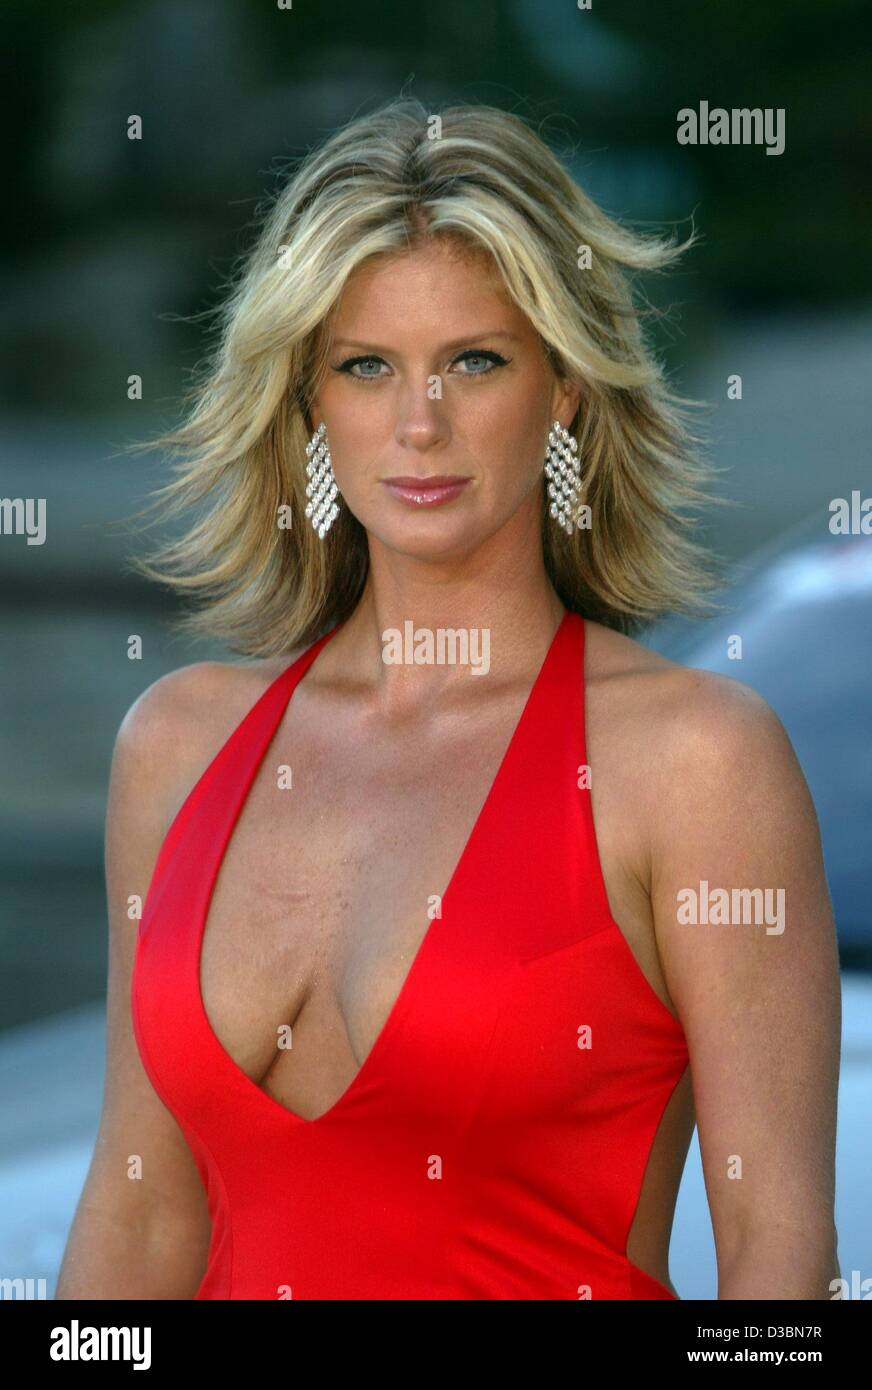 Bikini Rachel Hunter naked photo 2017